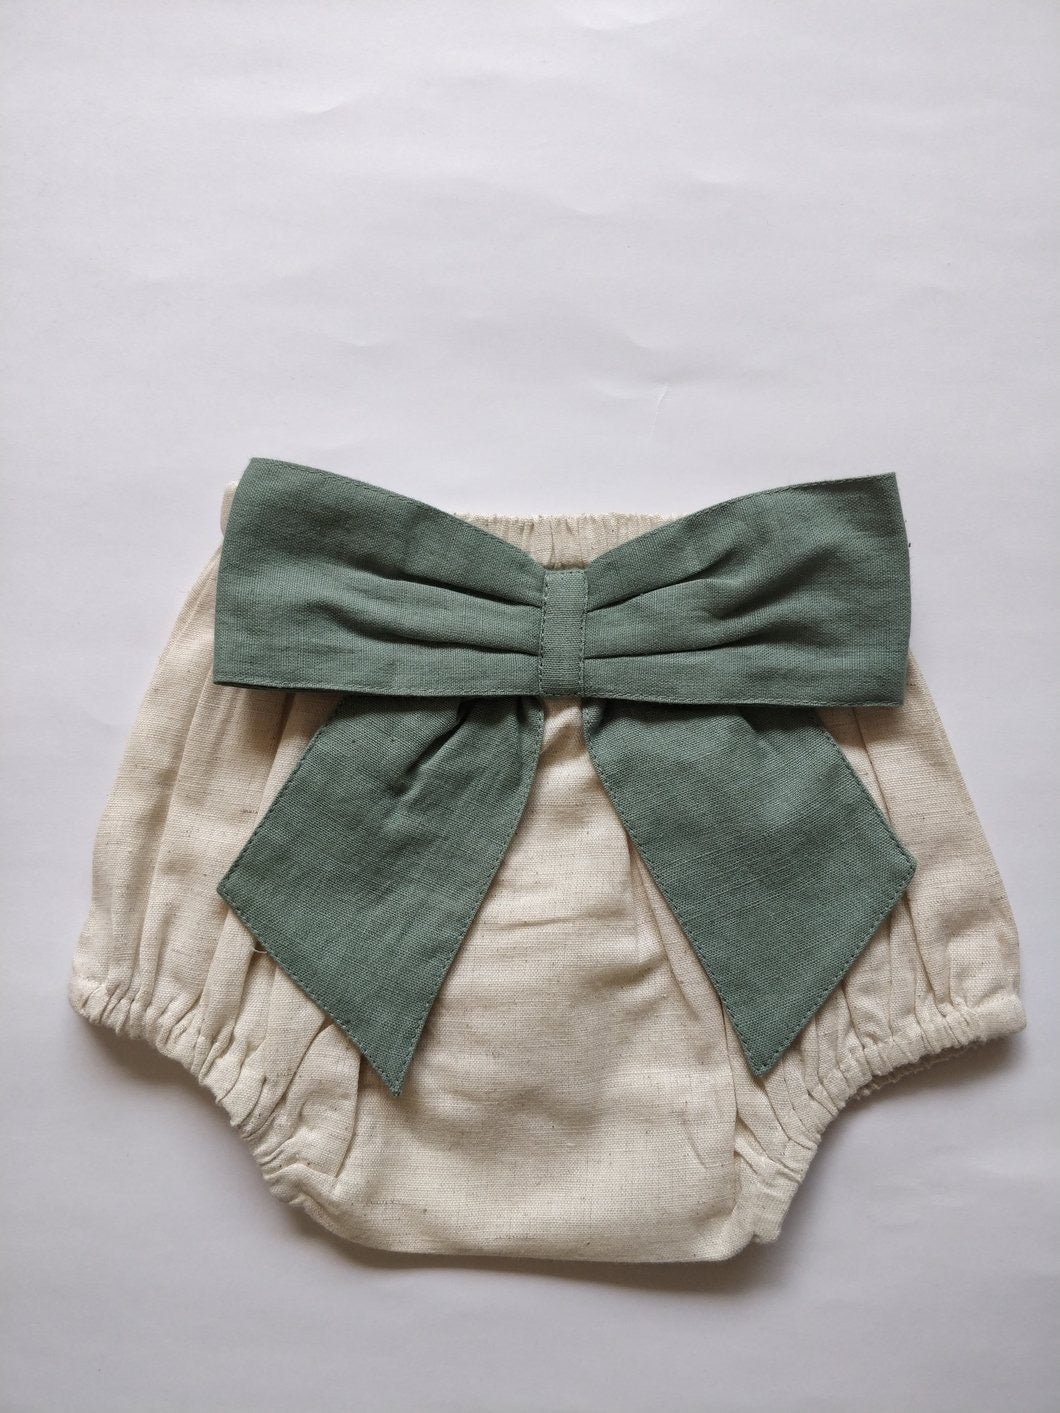 Ivory Diaper Covers with Contrast Bows in Sage